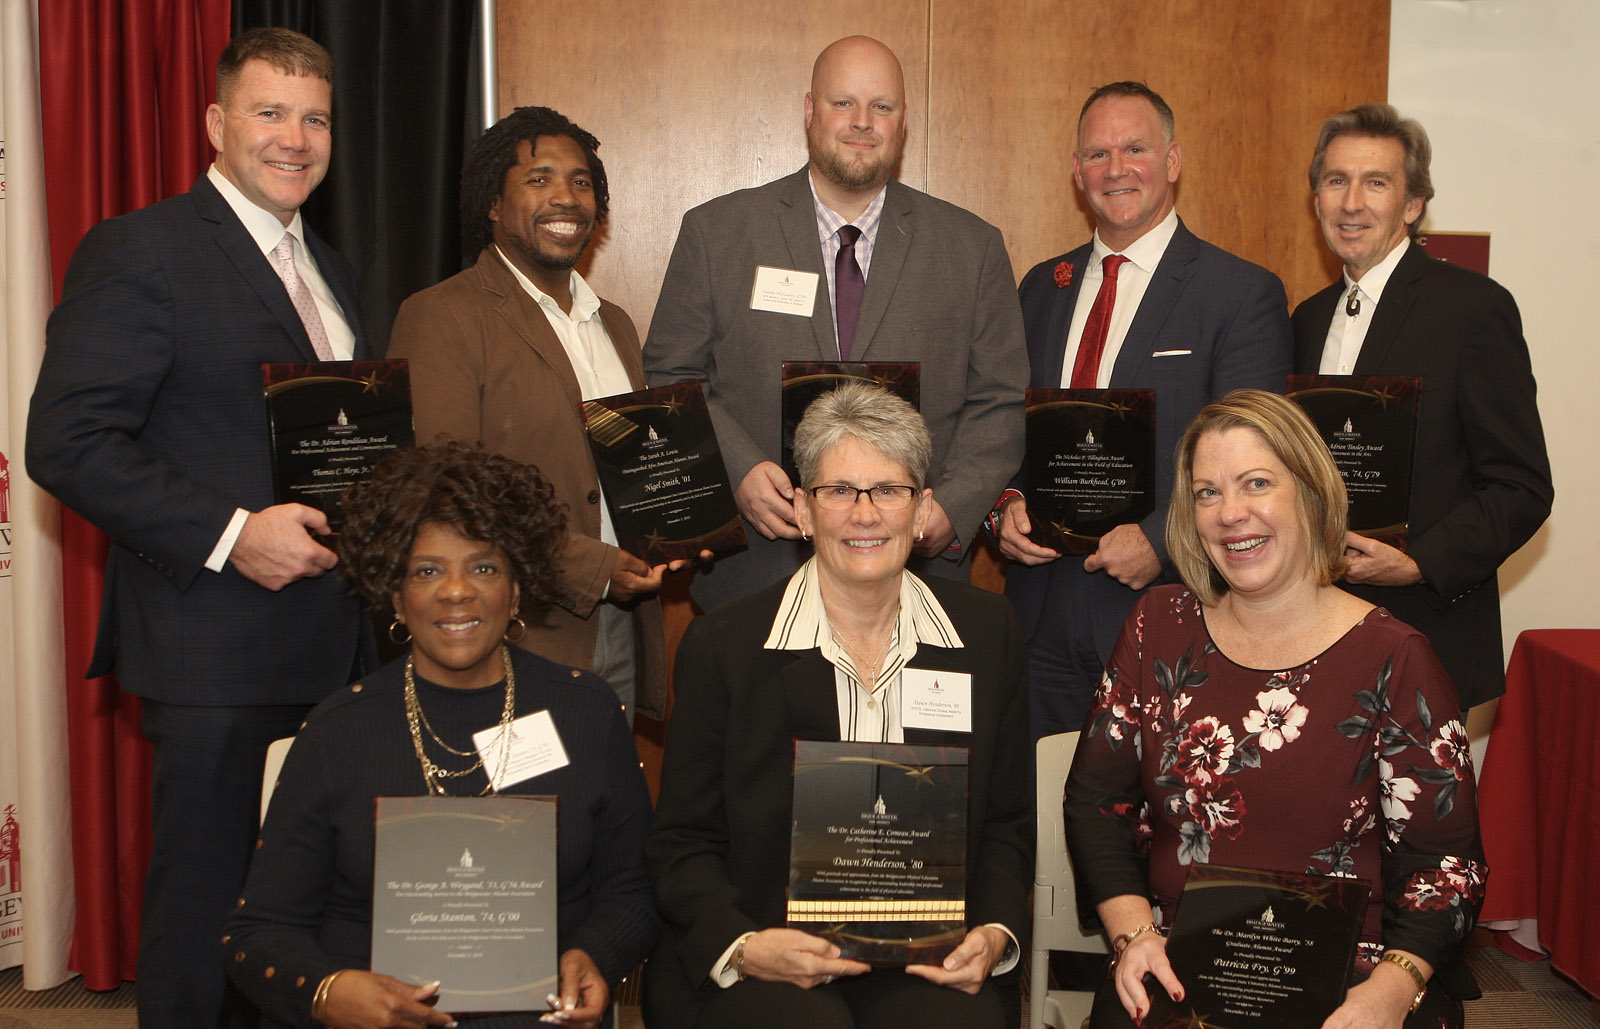 Image of 2018 Alumni Awards Winners holding their award plaques